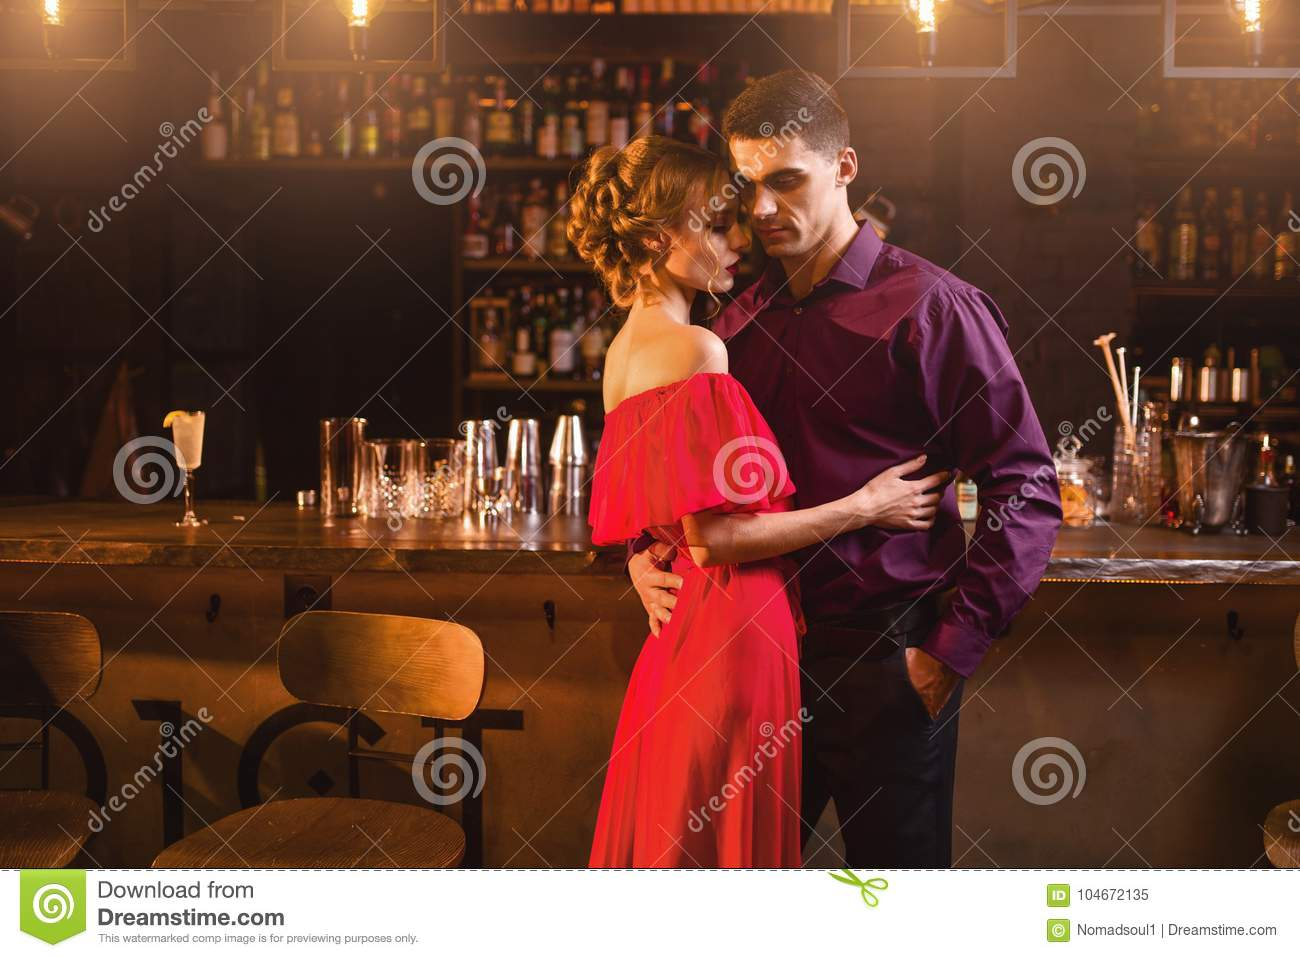 Dating a girl who works at a bar